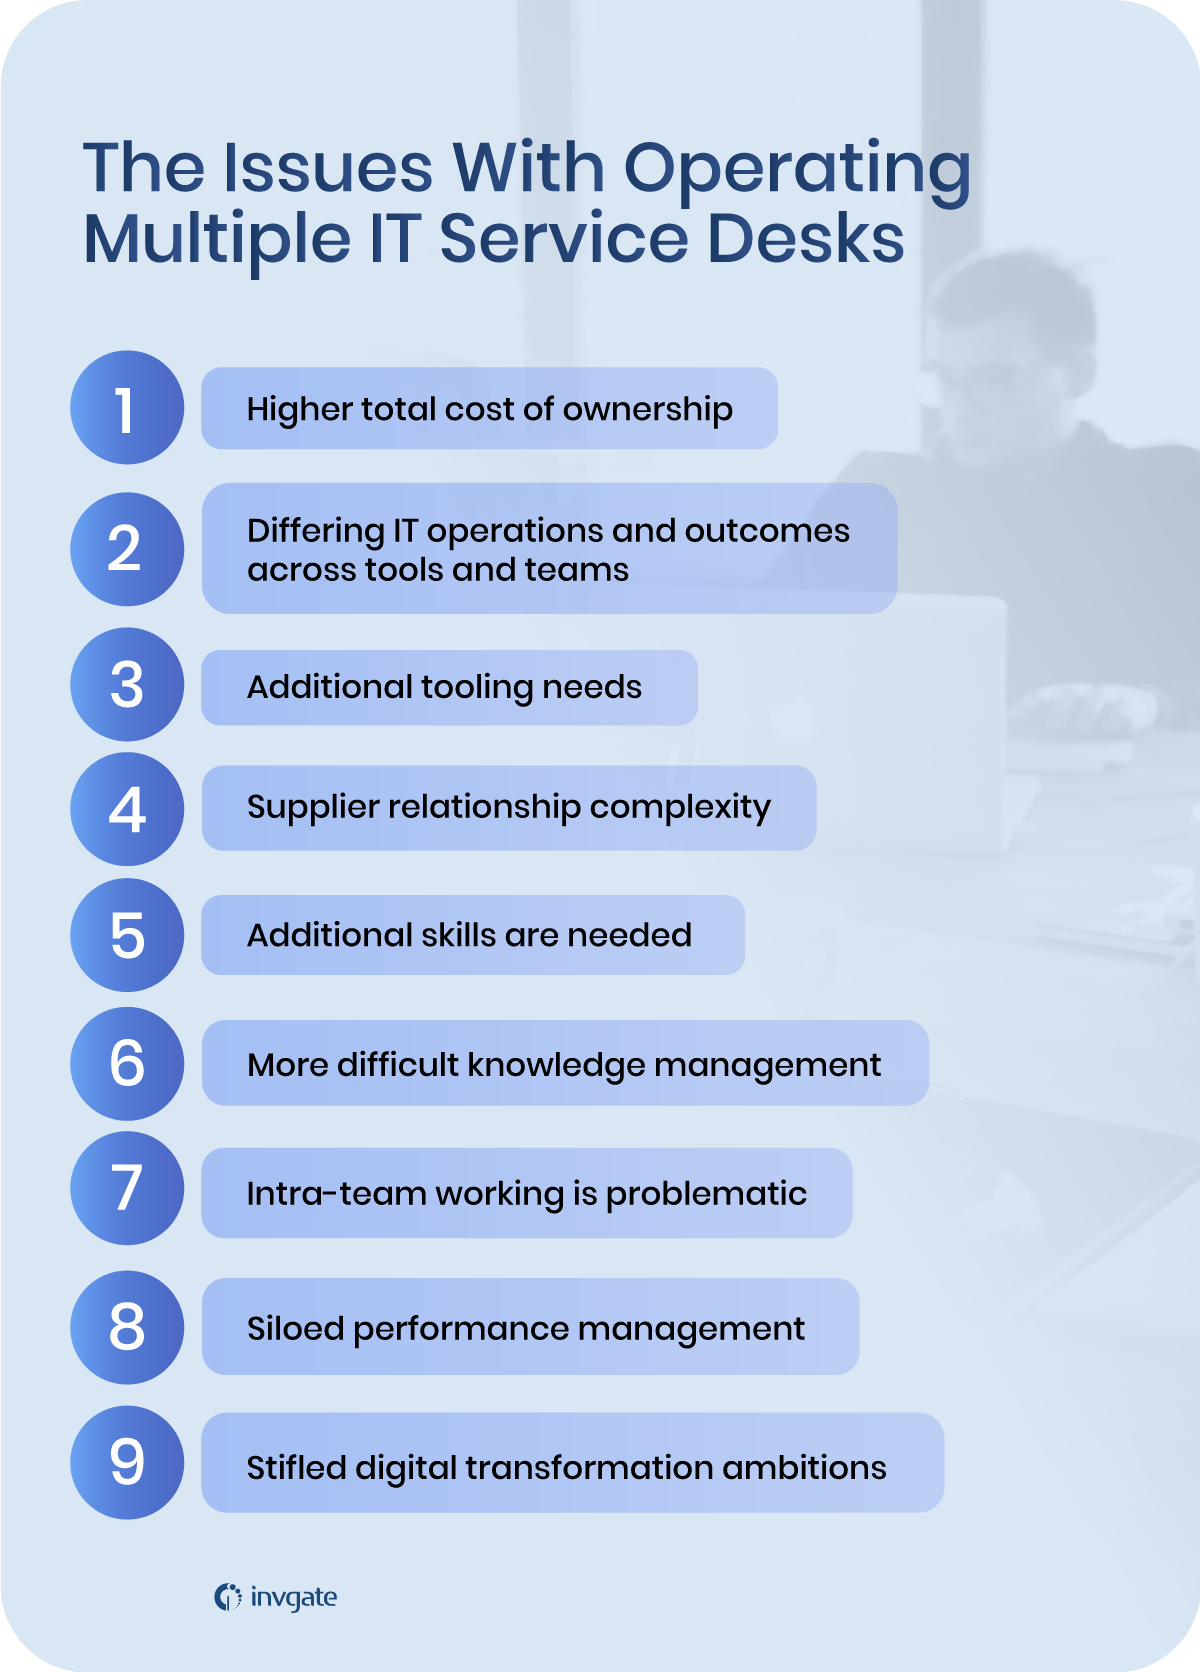 The issues with having multiple service desks